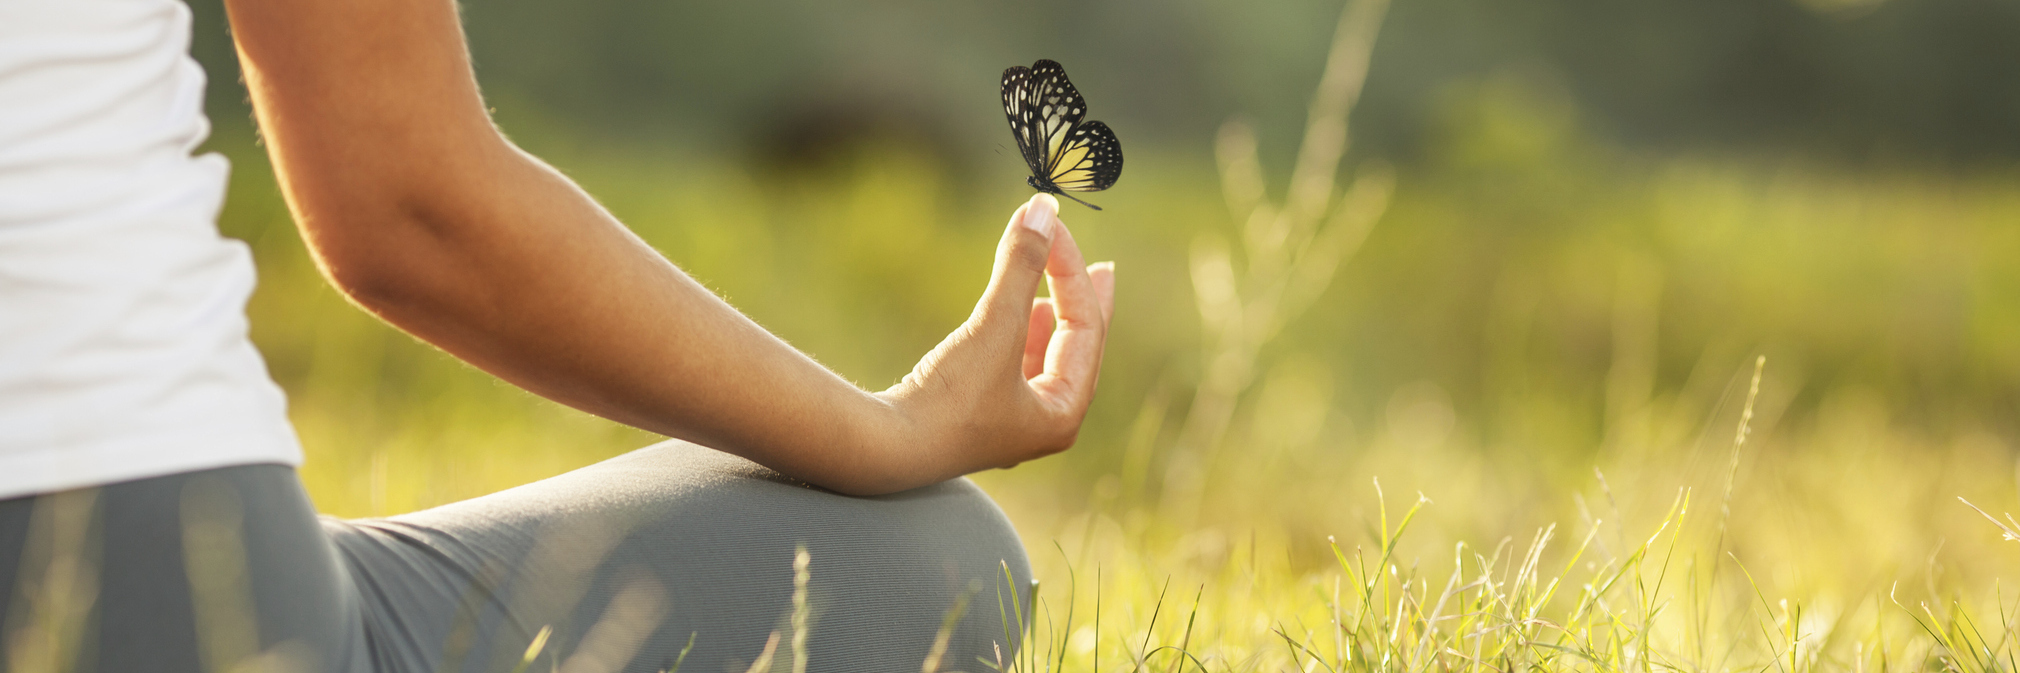 woman meditating in a field with a butterfly on her hand